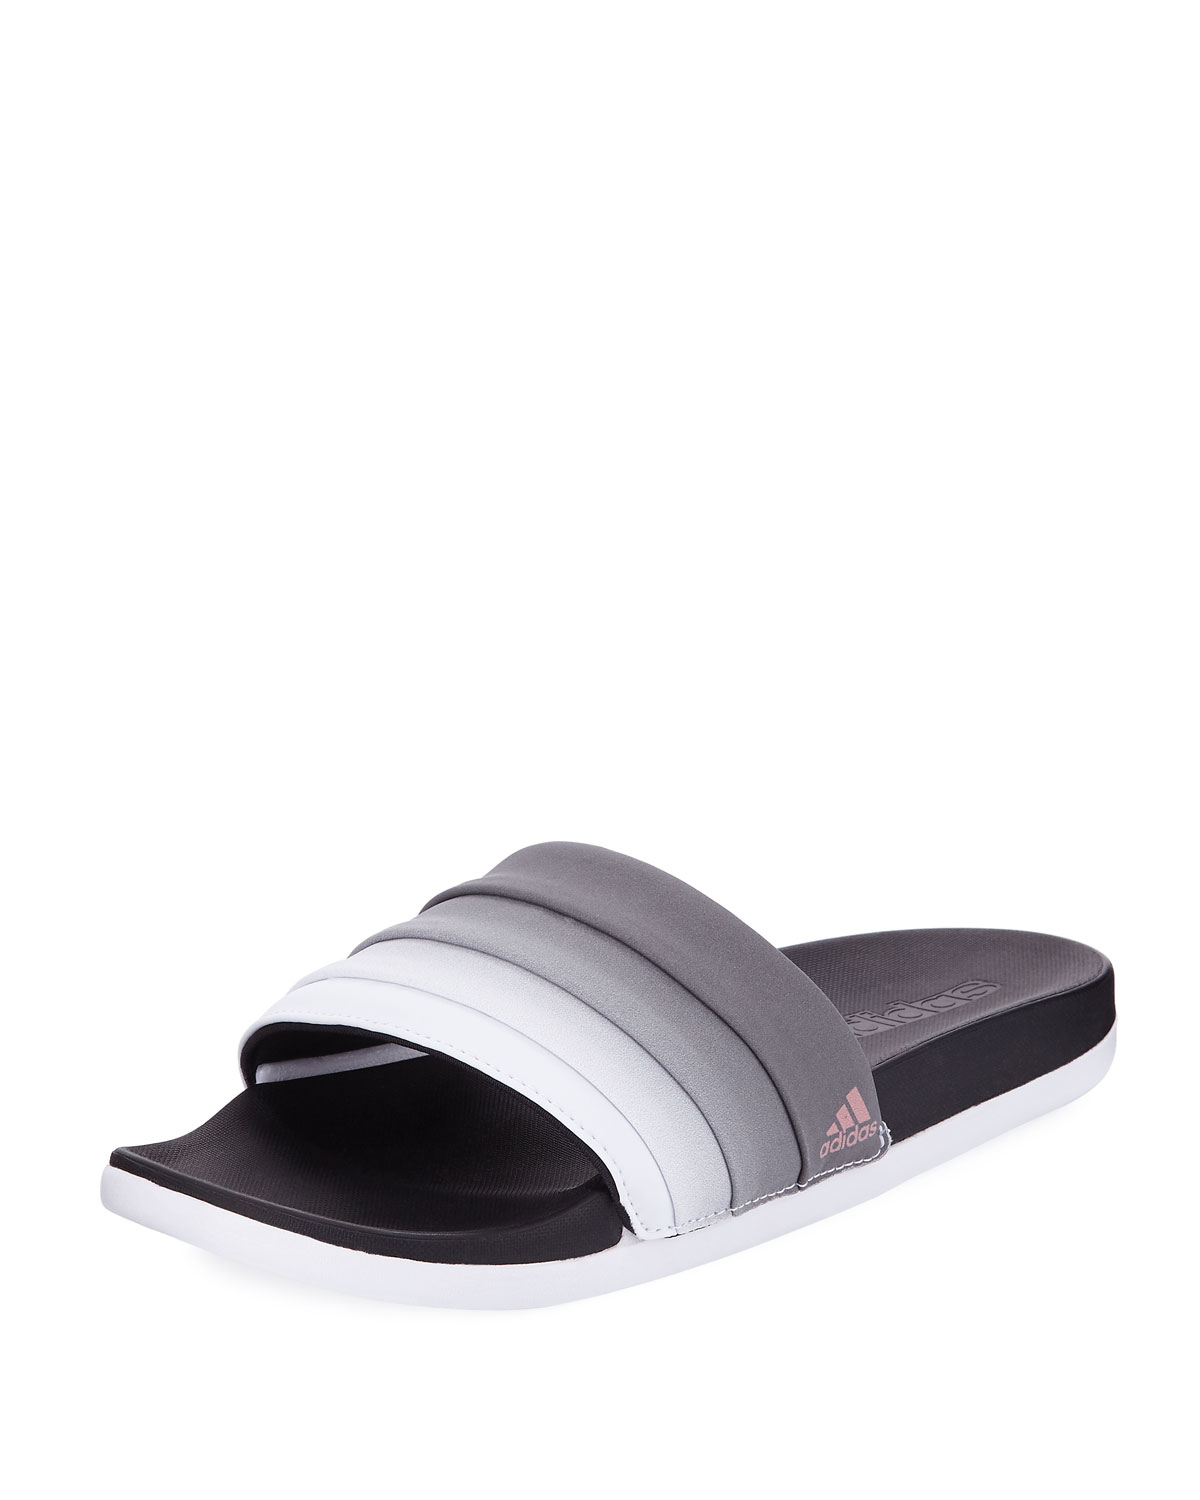 detailed pictures 7fa50 5cf78 AdidasAdilette Ombre Comfort Slide Sandals